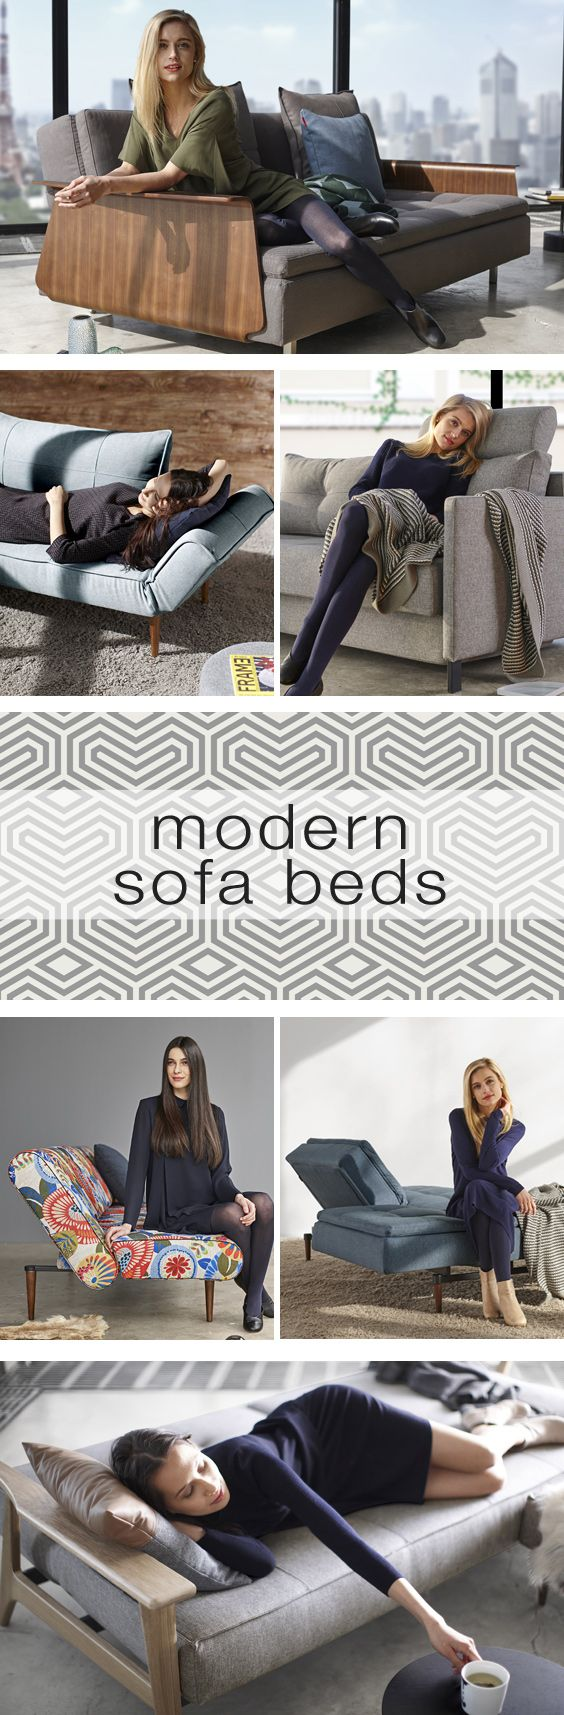 Shop cool, high-end modern sleeper sofas to make your home comfortable and stylish - day or night!